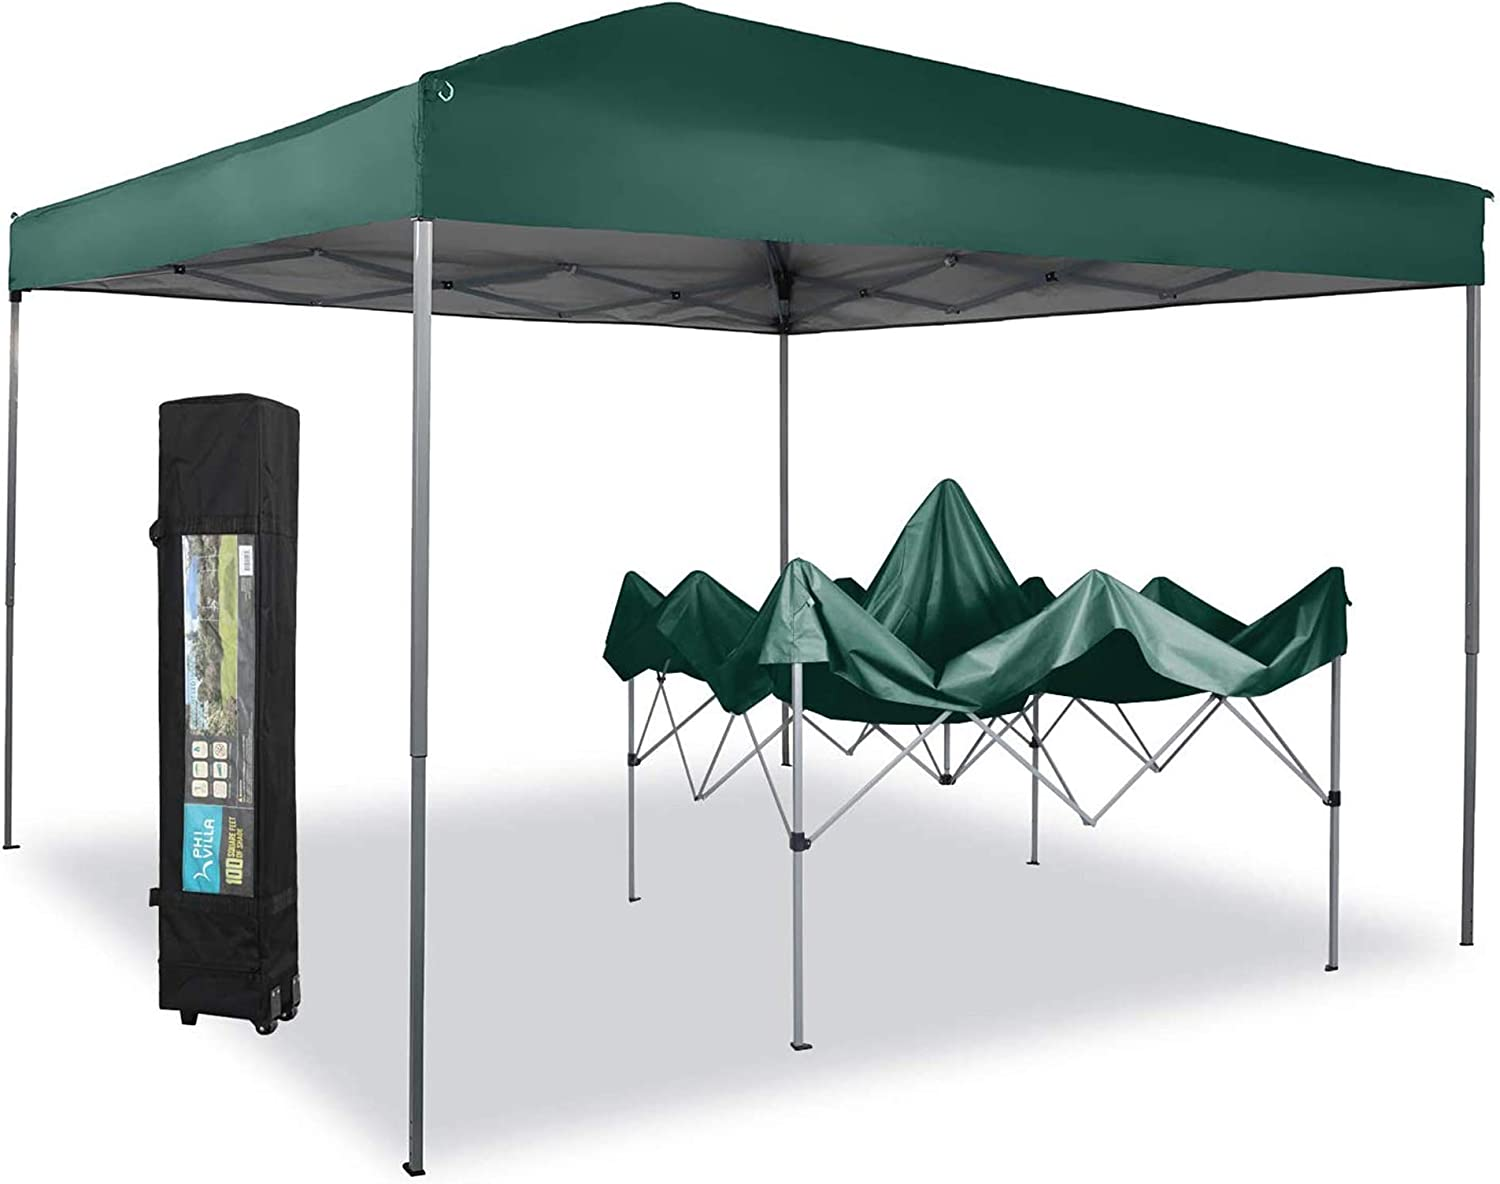 PHI VILLA 10 x 10ft Portable Pop Up Canopy Event Tent Party Tent, 100 Sq. Ft of Shade (Green)…